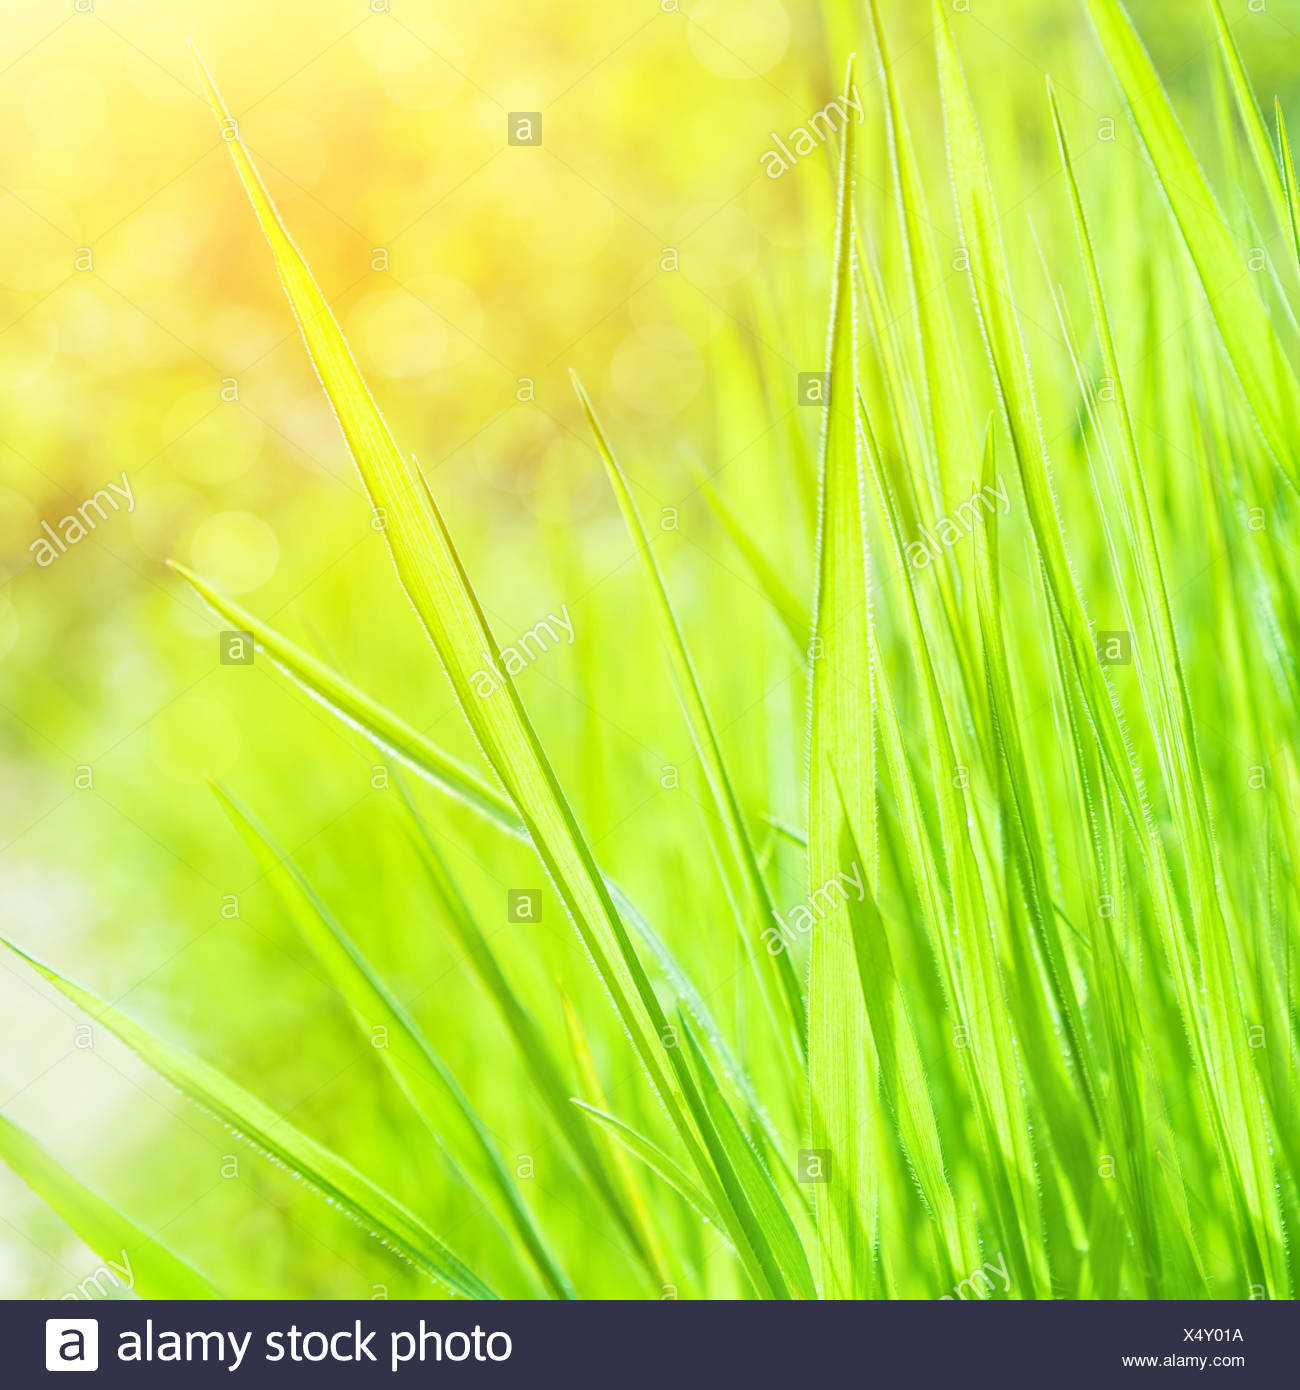 Abstract Natural Background Fresh Grass Border On Blurred Green